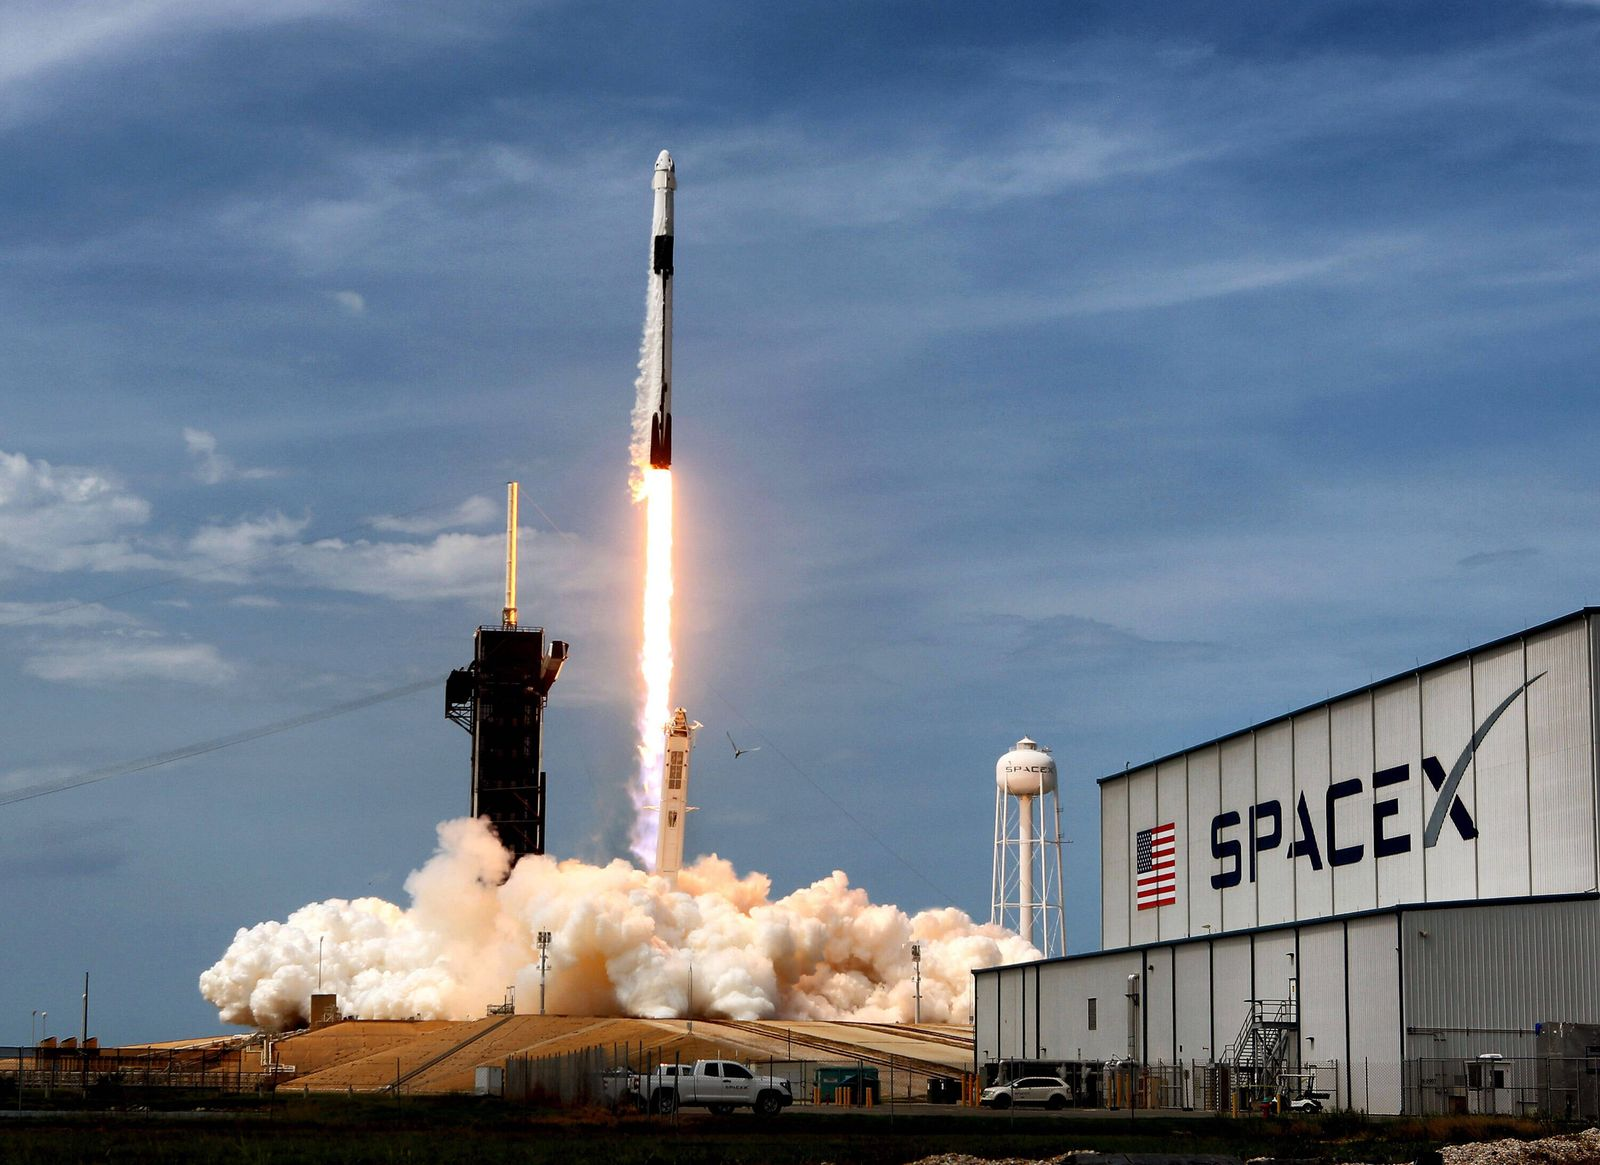 May 30, 2020, Kennedy Space Center, FL, USA: On May 30, 2020, the SpaceX Falcon 9 Crew Dragon capsule lifts off from Ken